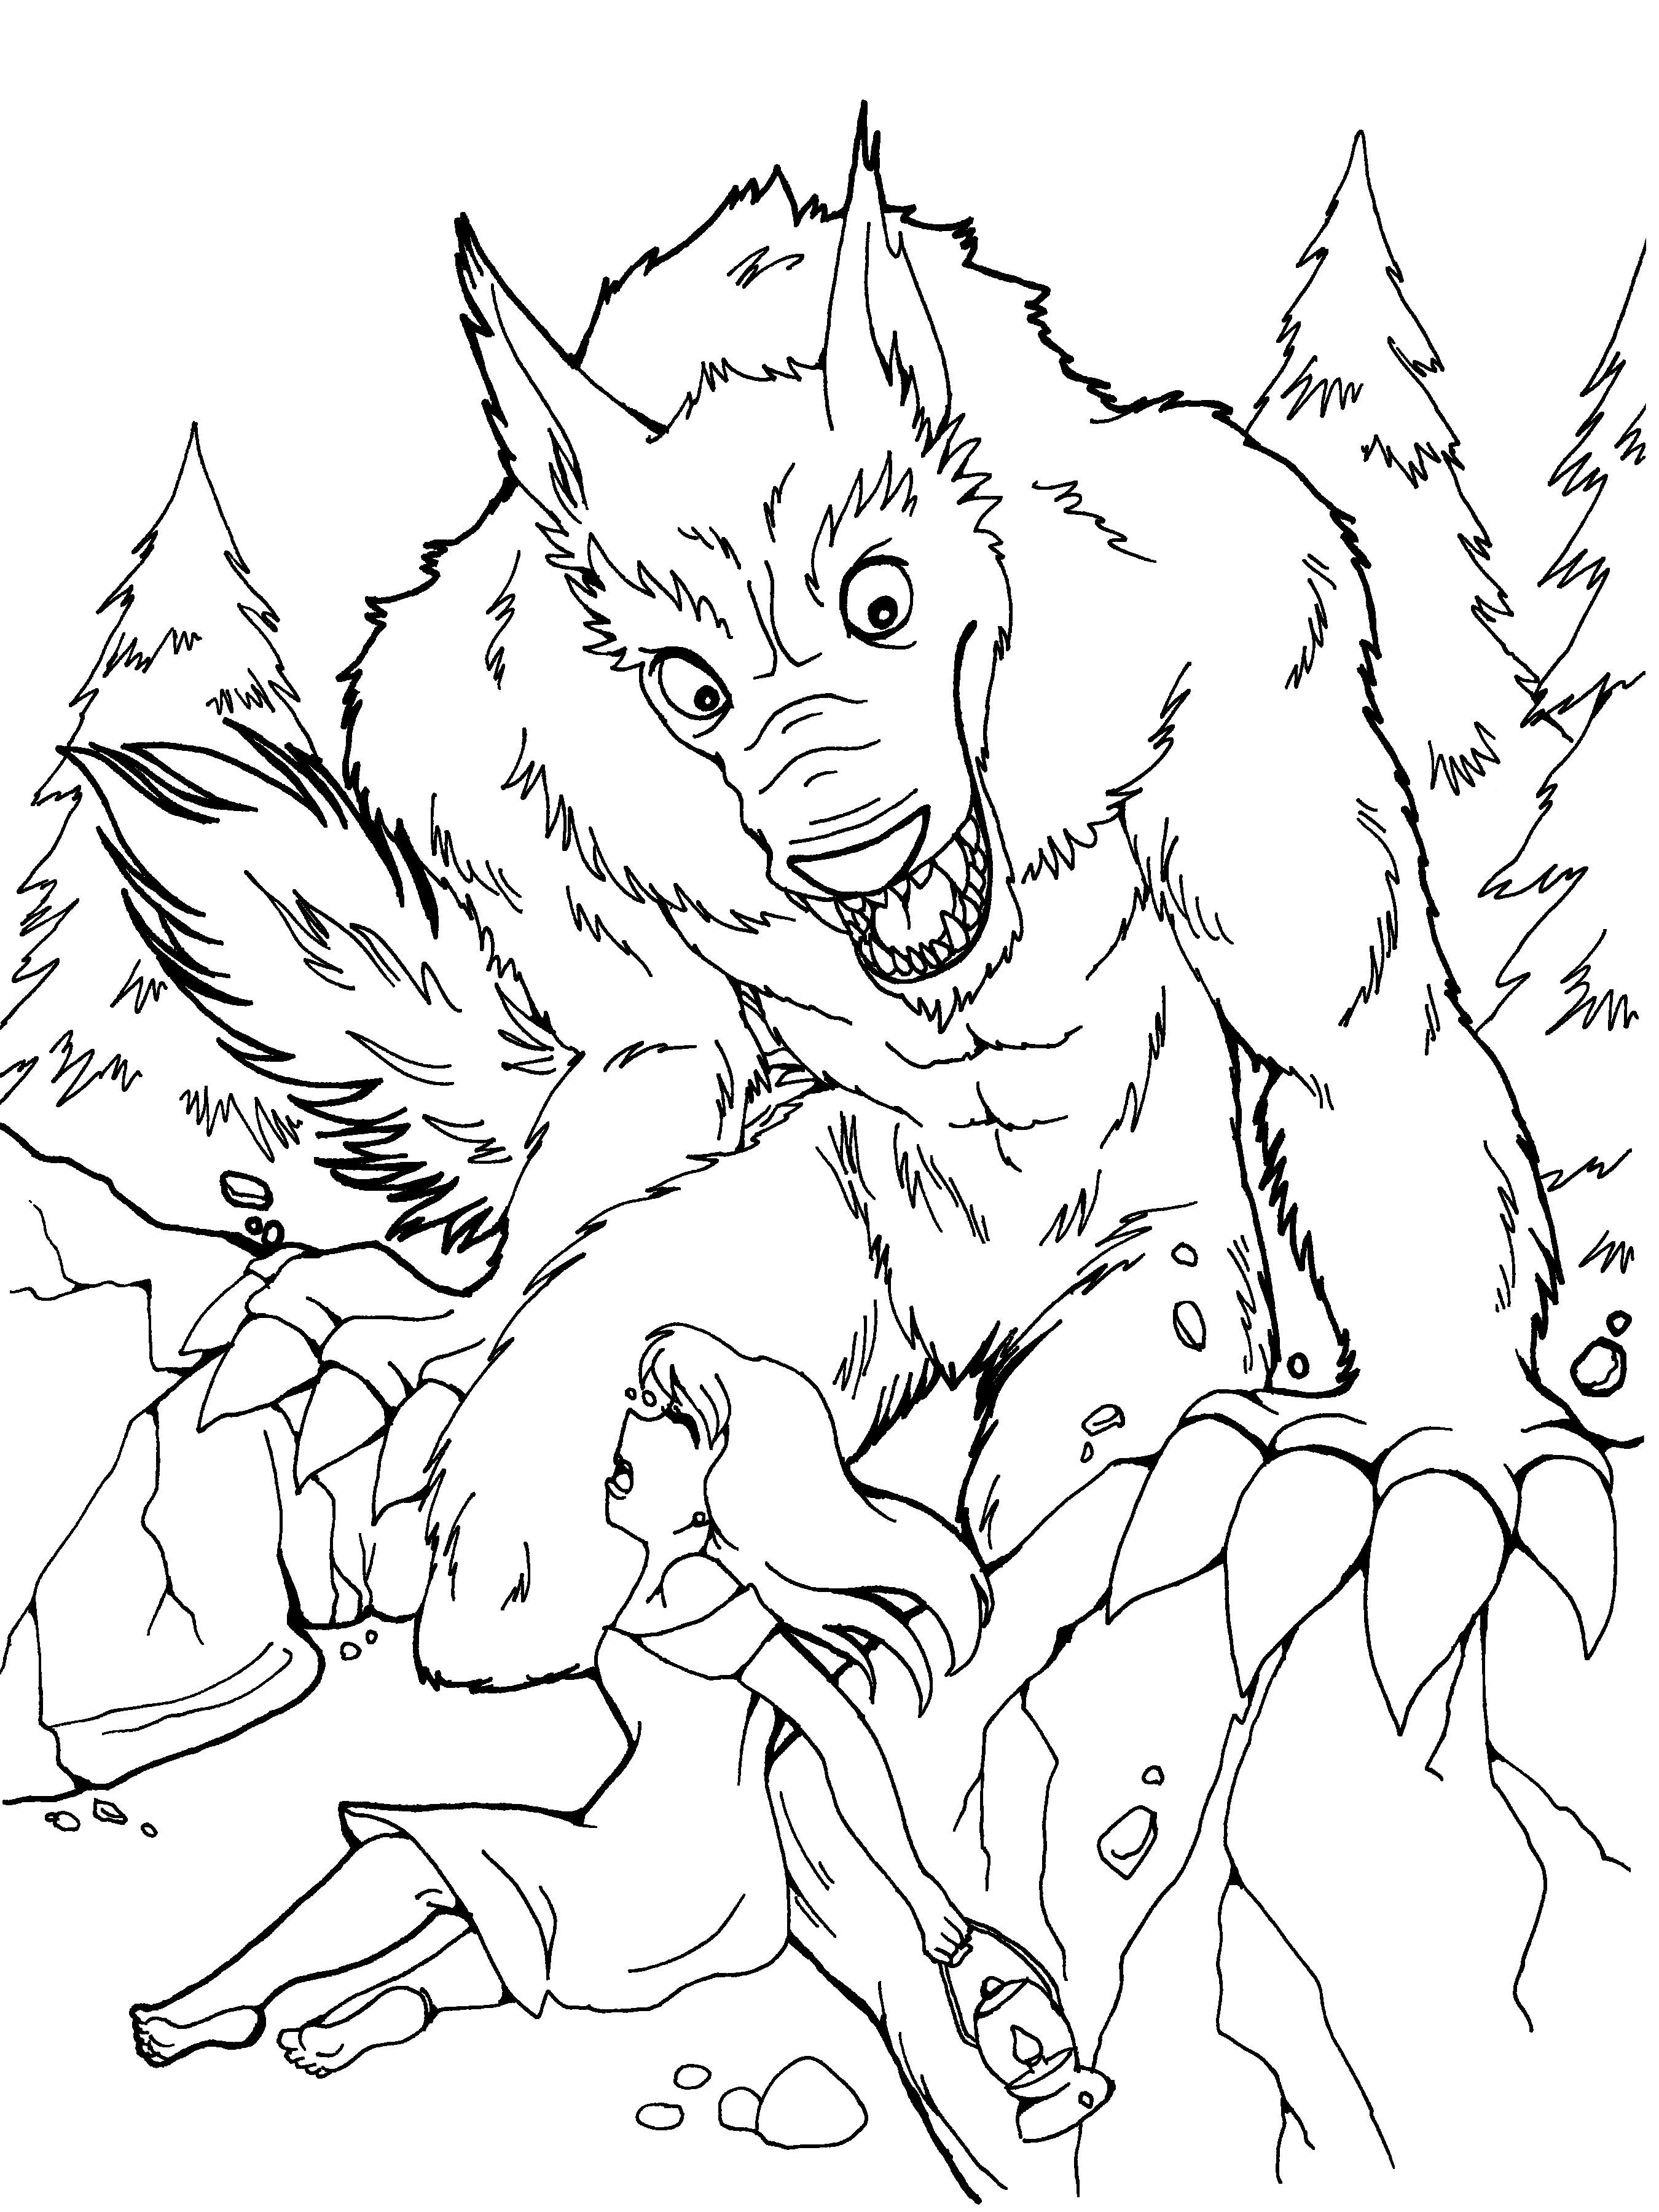 Free Werewolf Coloring Page Get More Pages To Color At